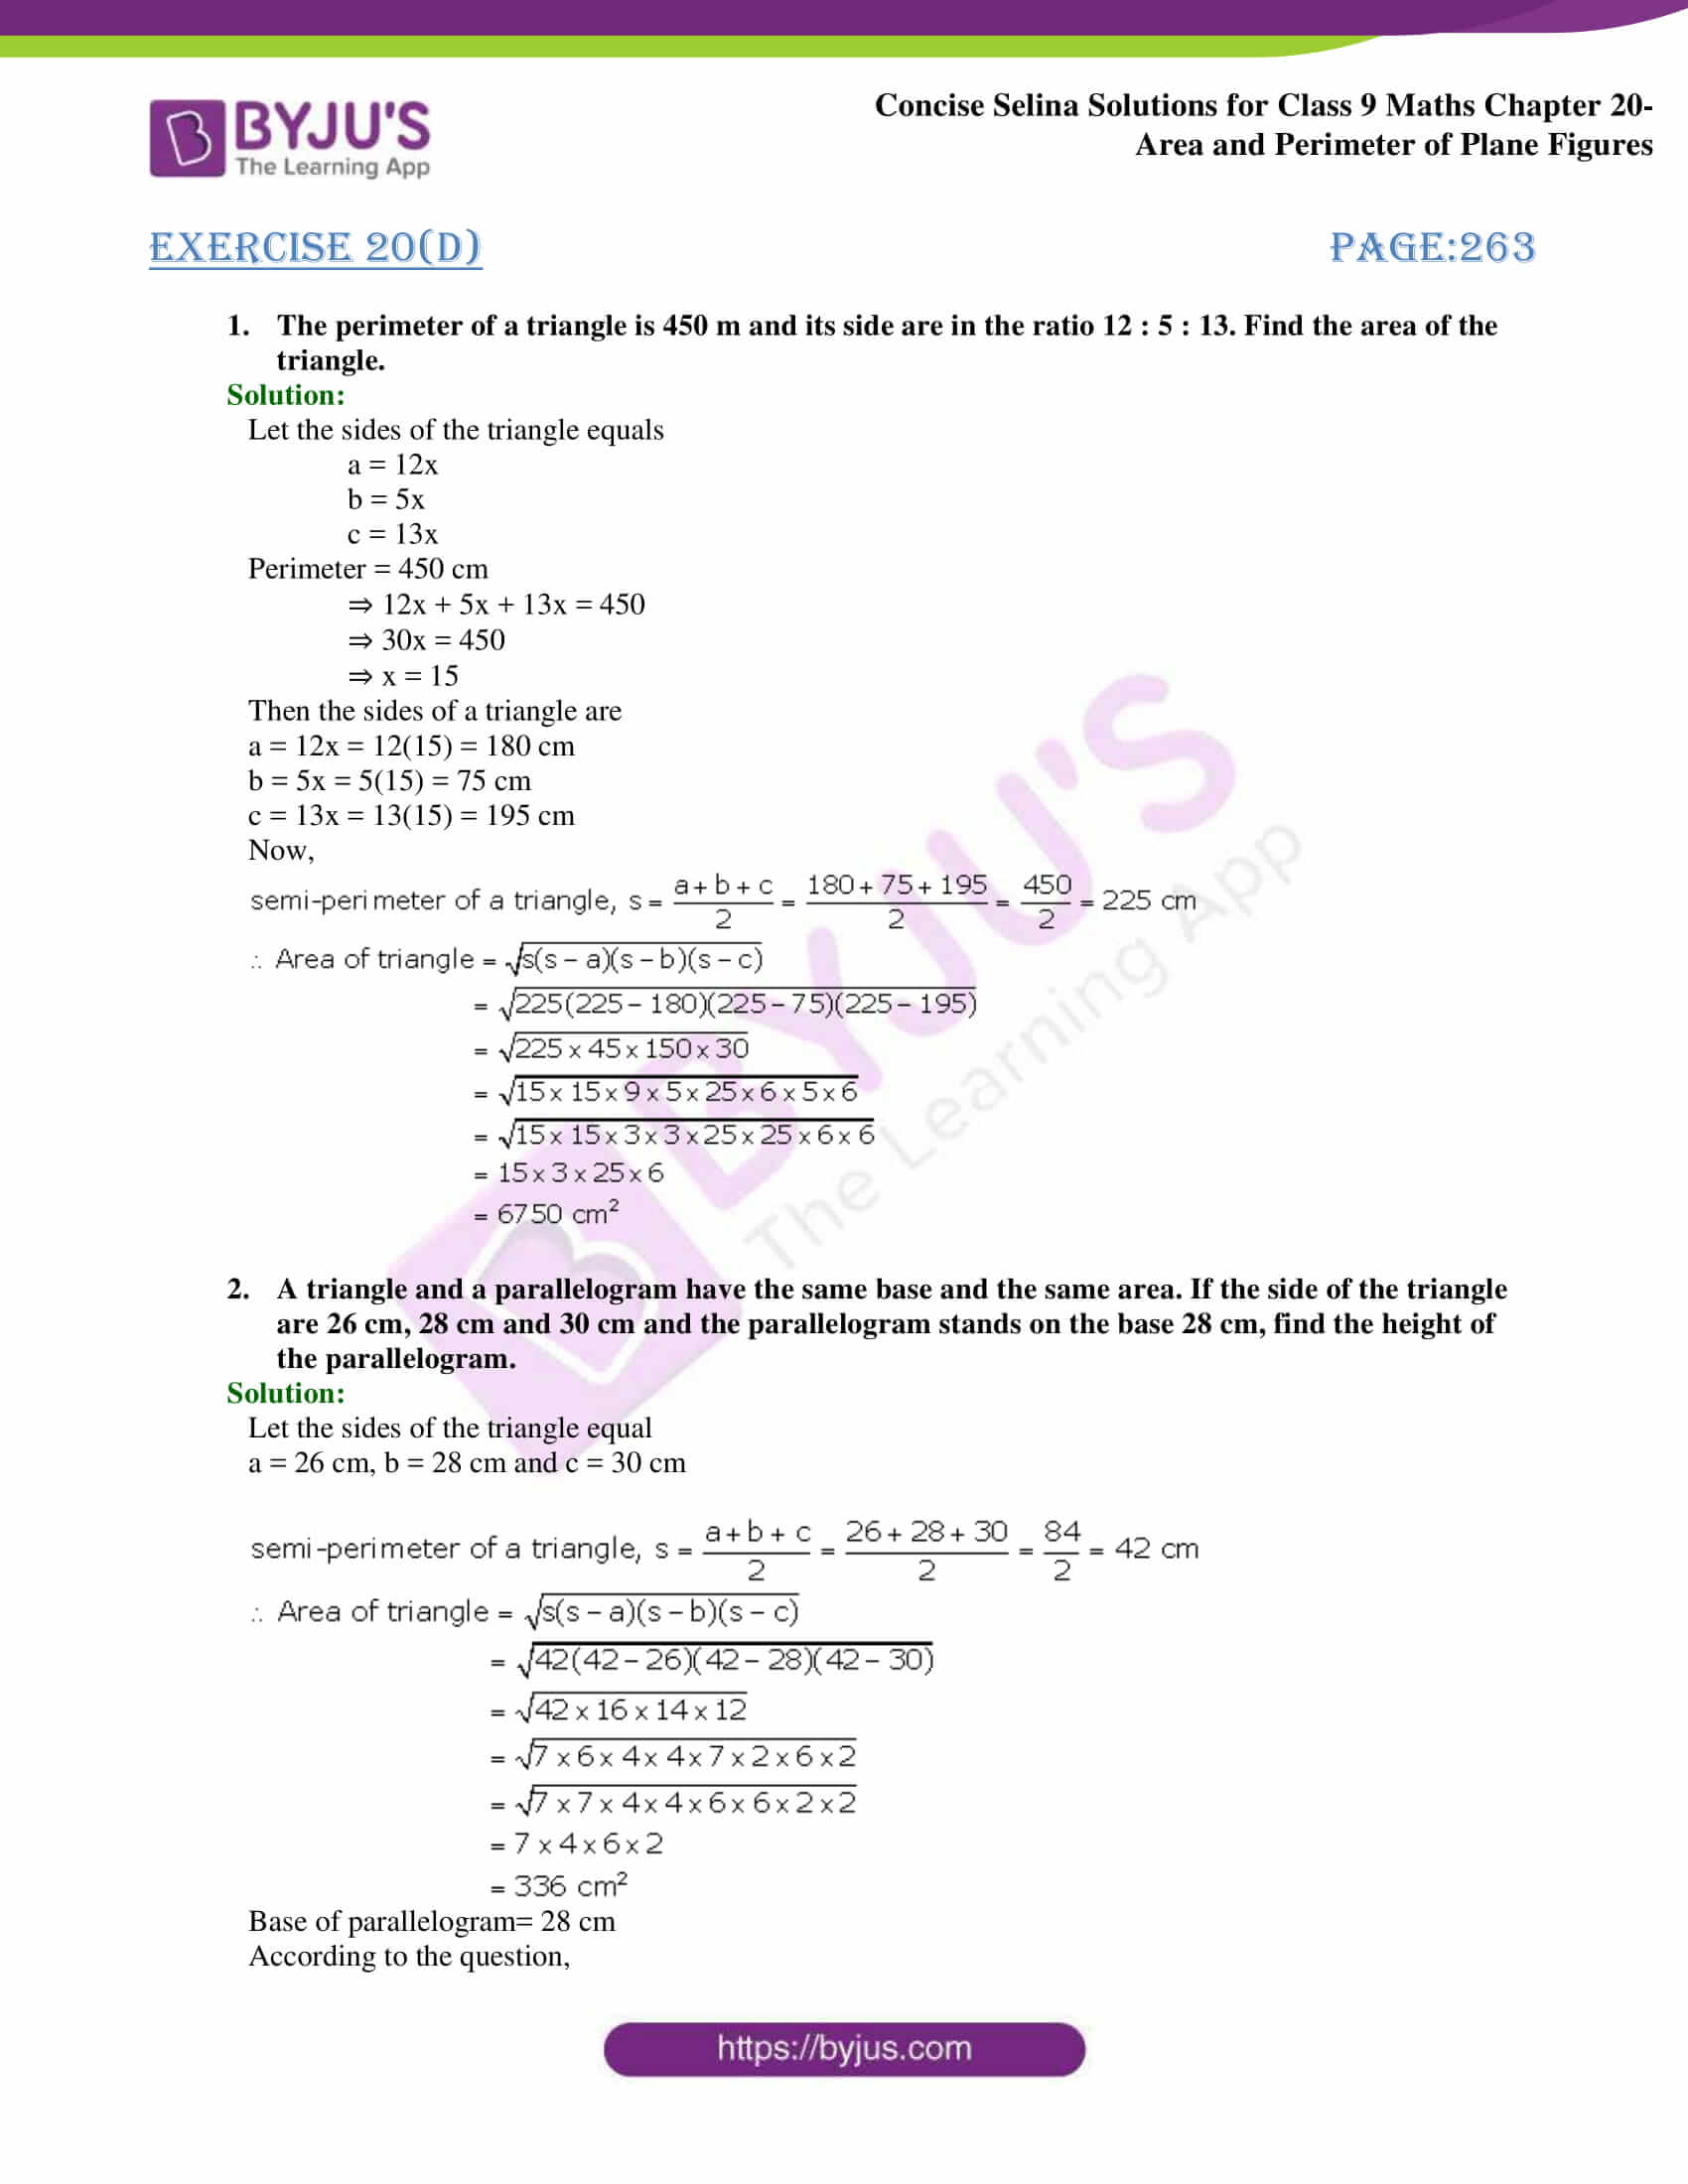 Concise Selina Solutions Class 9 Maths Chapter 20 Area and Perimeter of Plane part 45